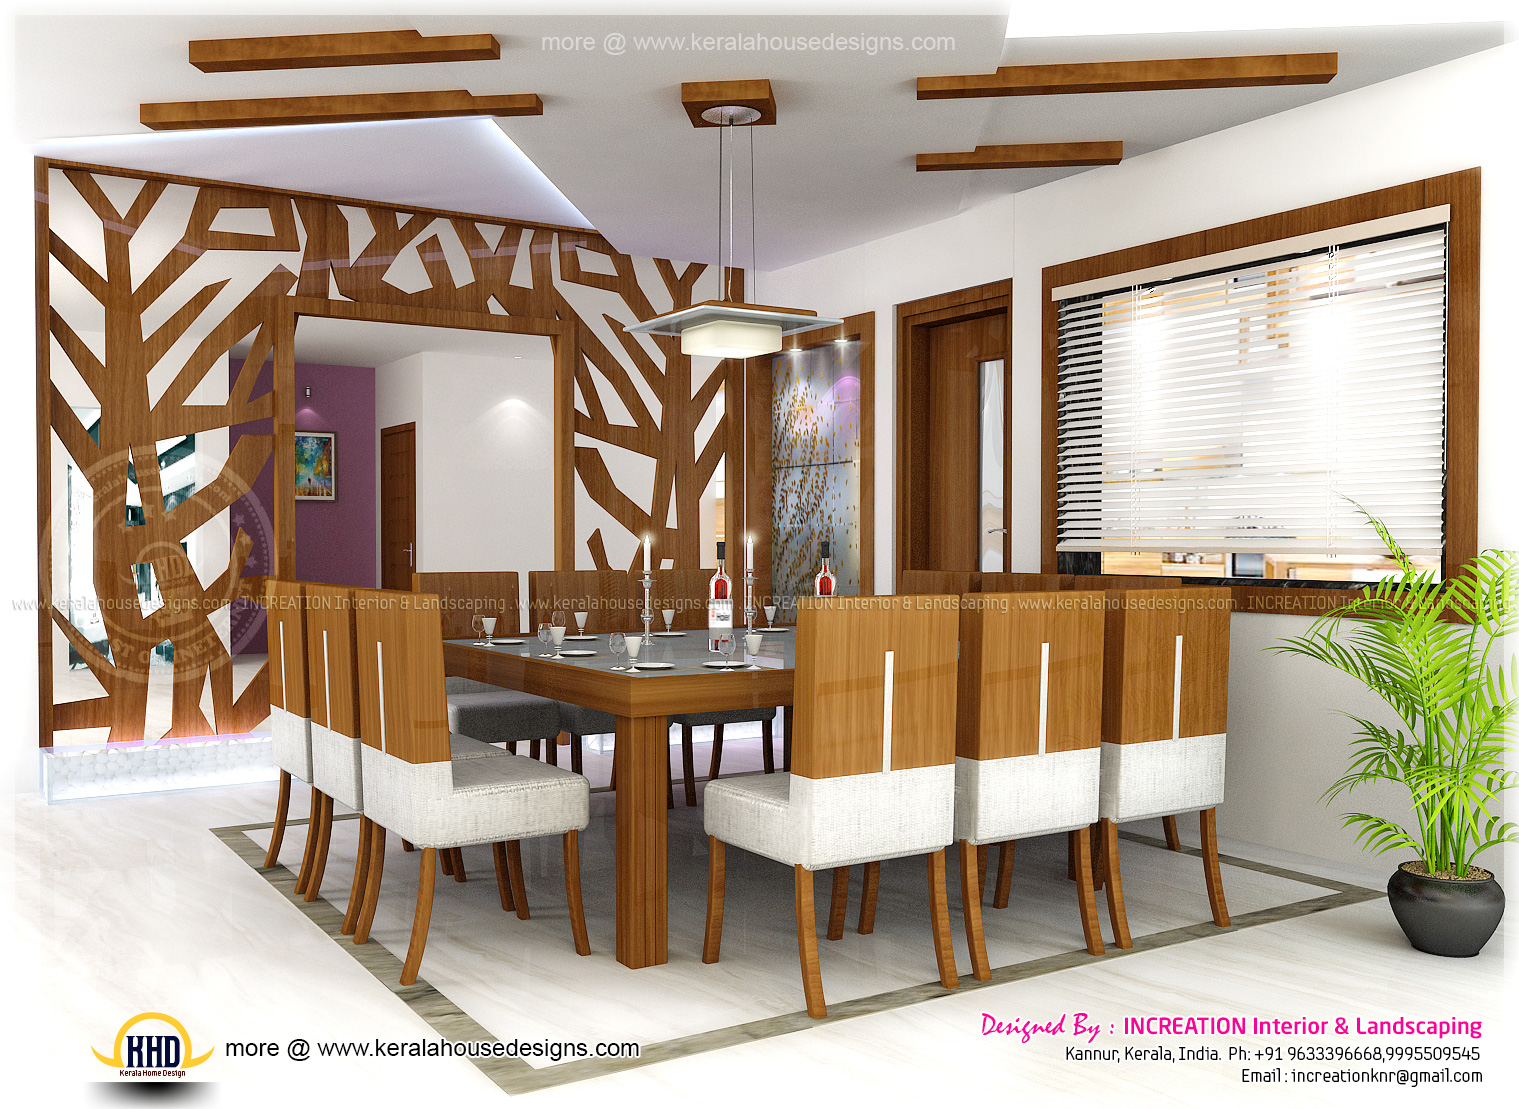 Interior designs from kannur kerala home kerala plans for Small indian house interior design photos